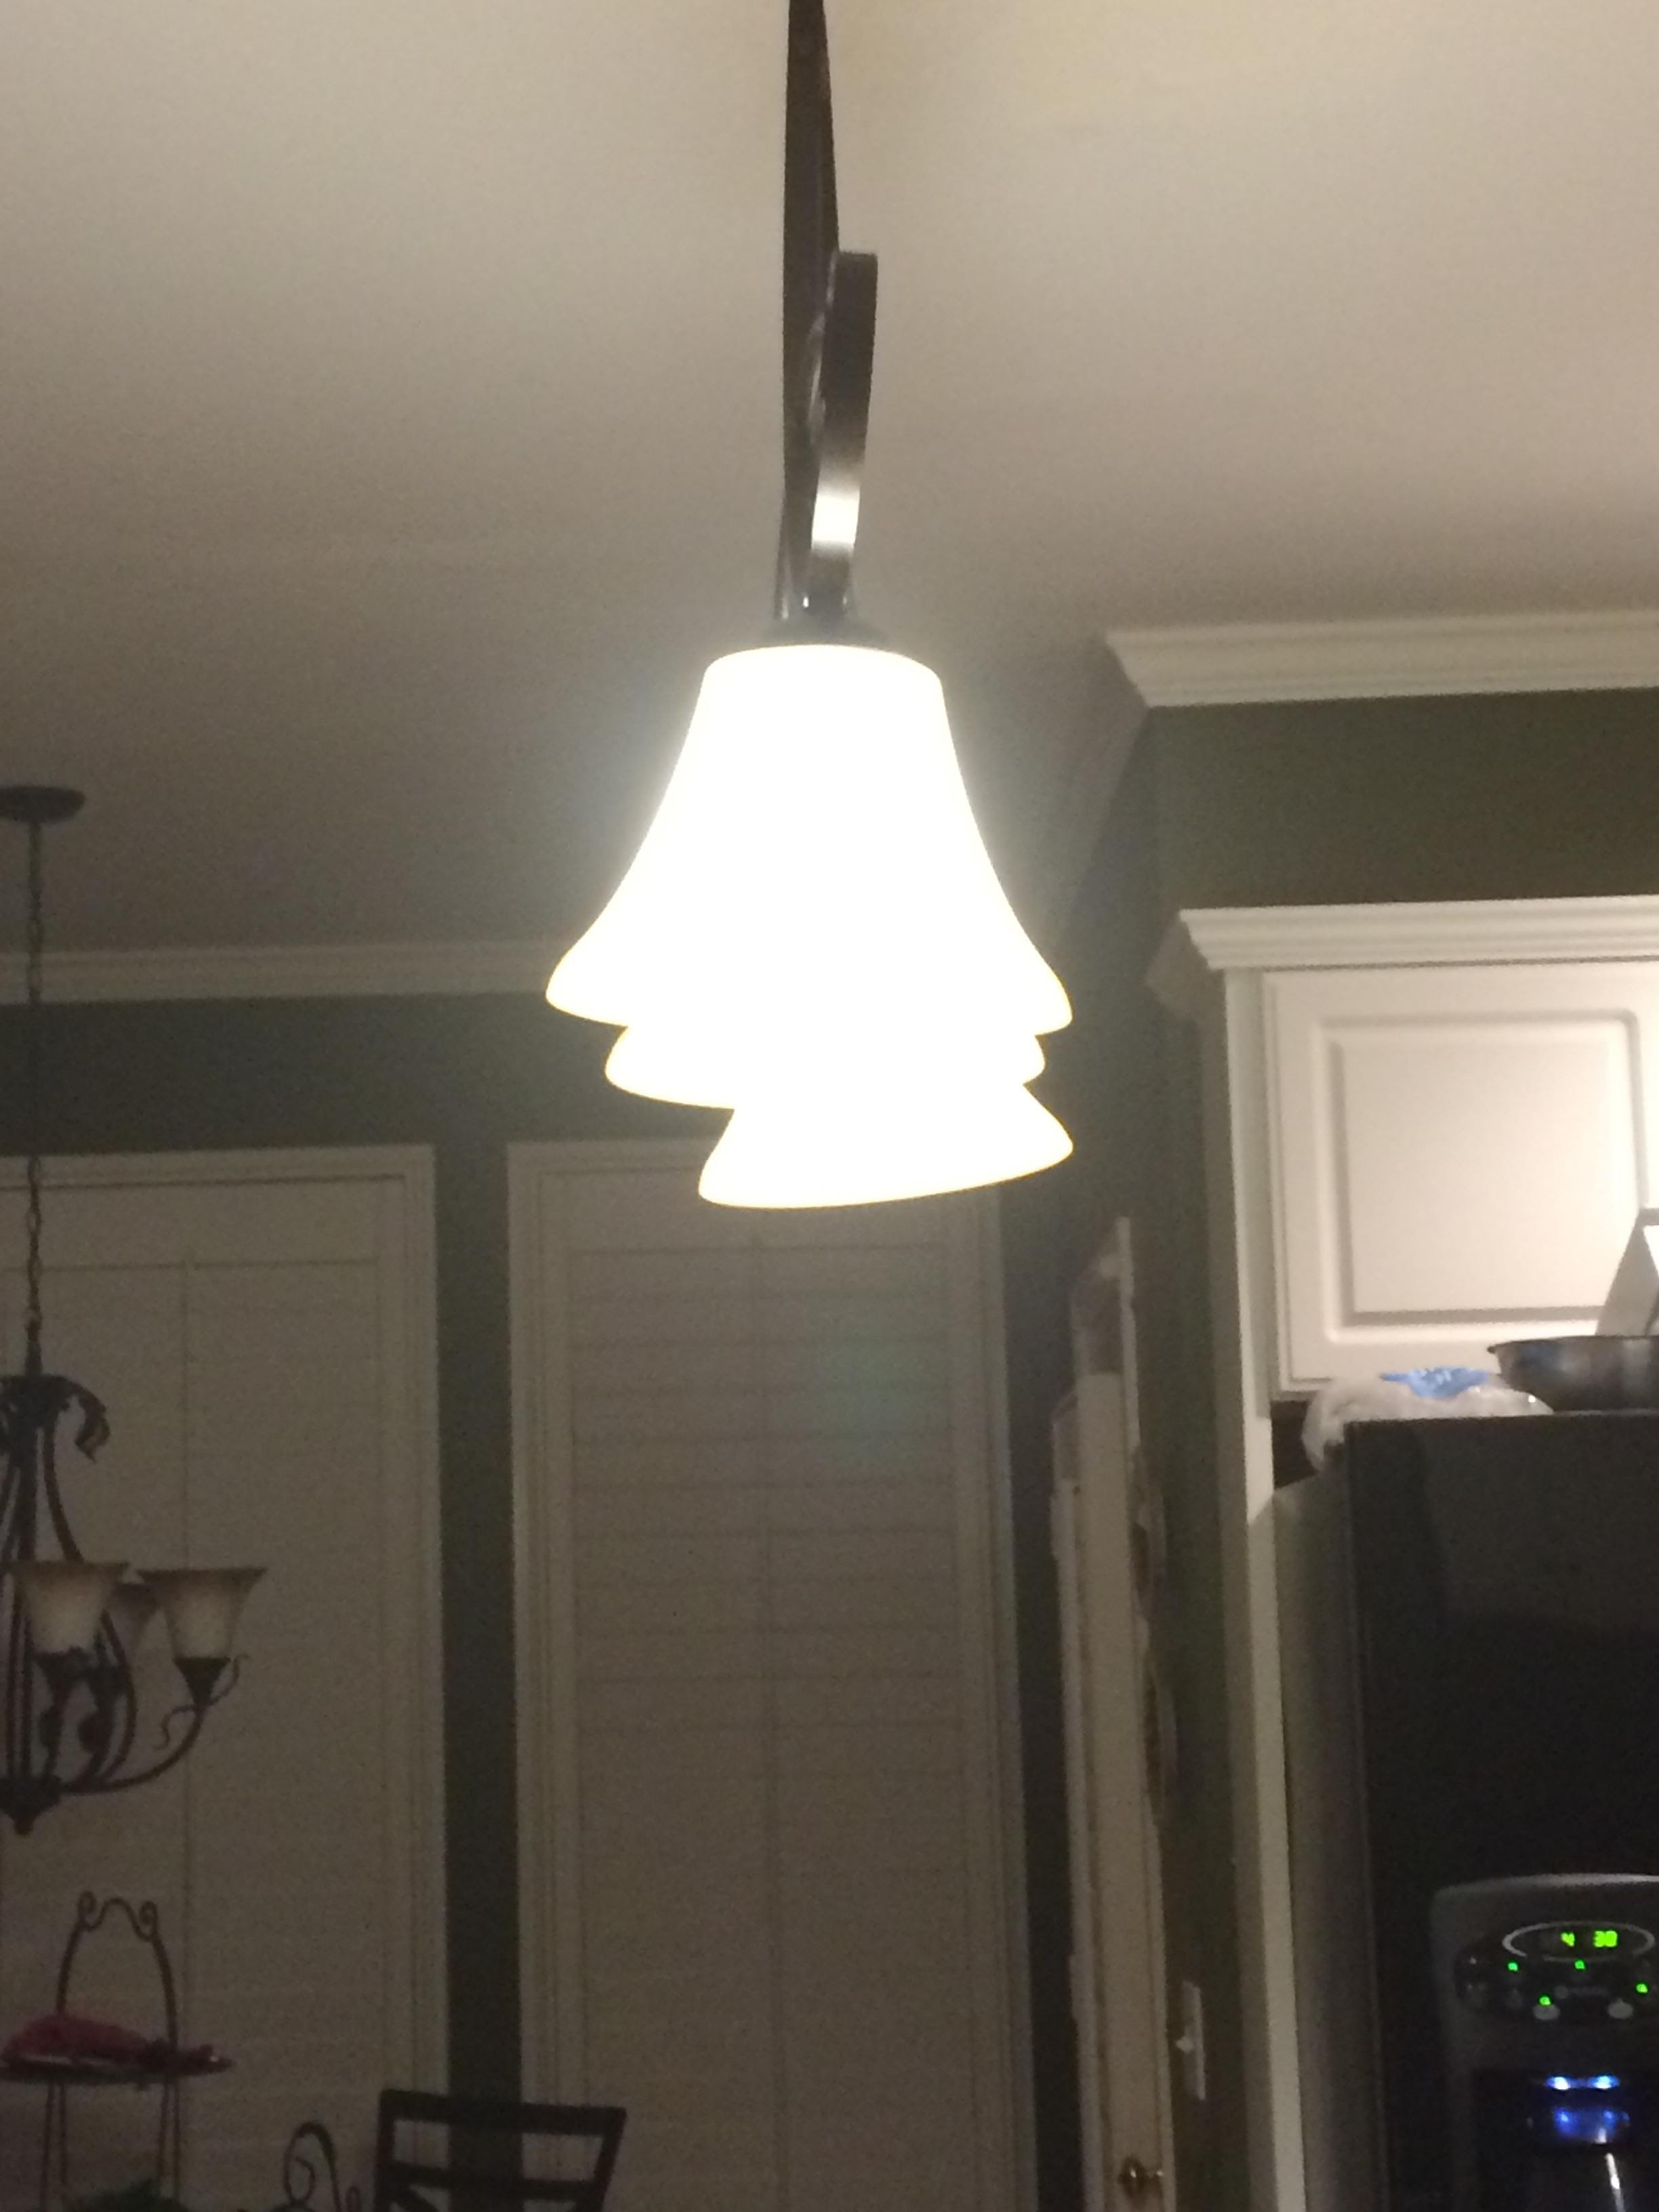 Need to level the glass shades on a hampton bay 3 tier pendant light